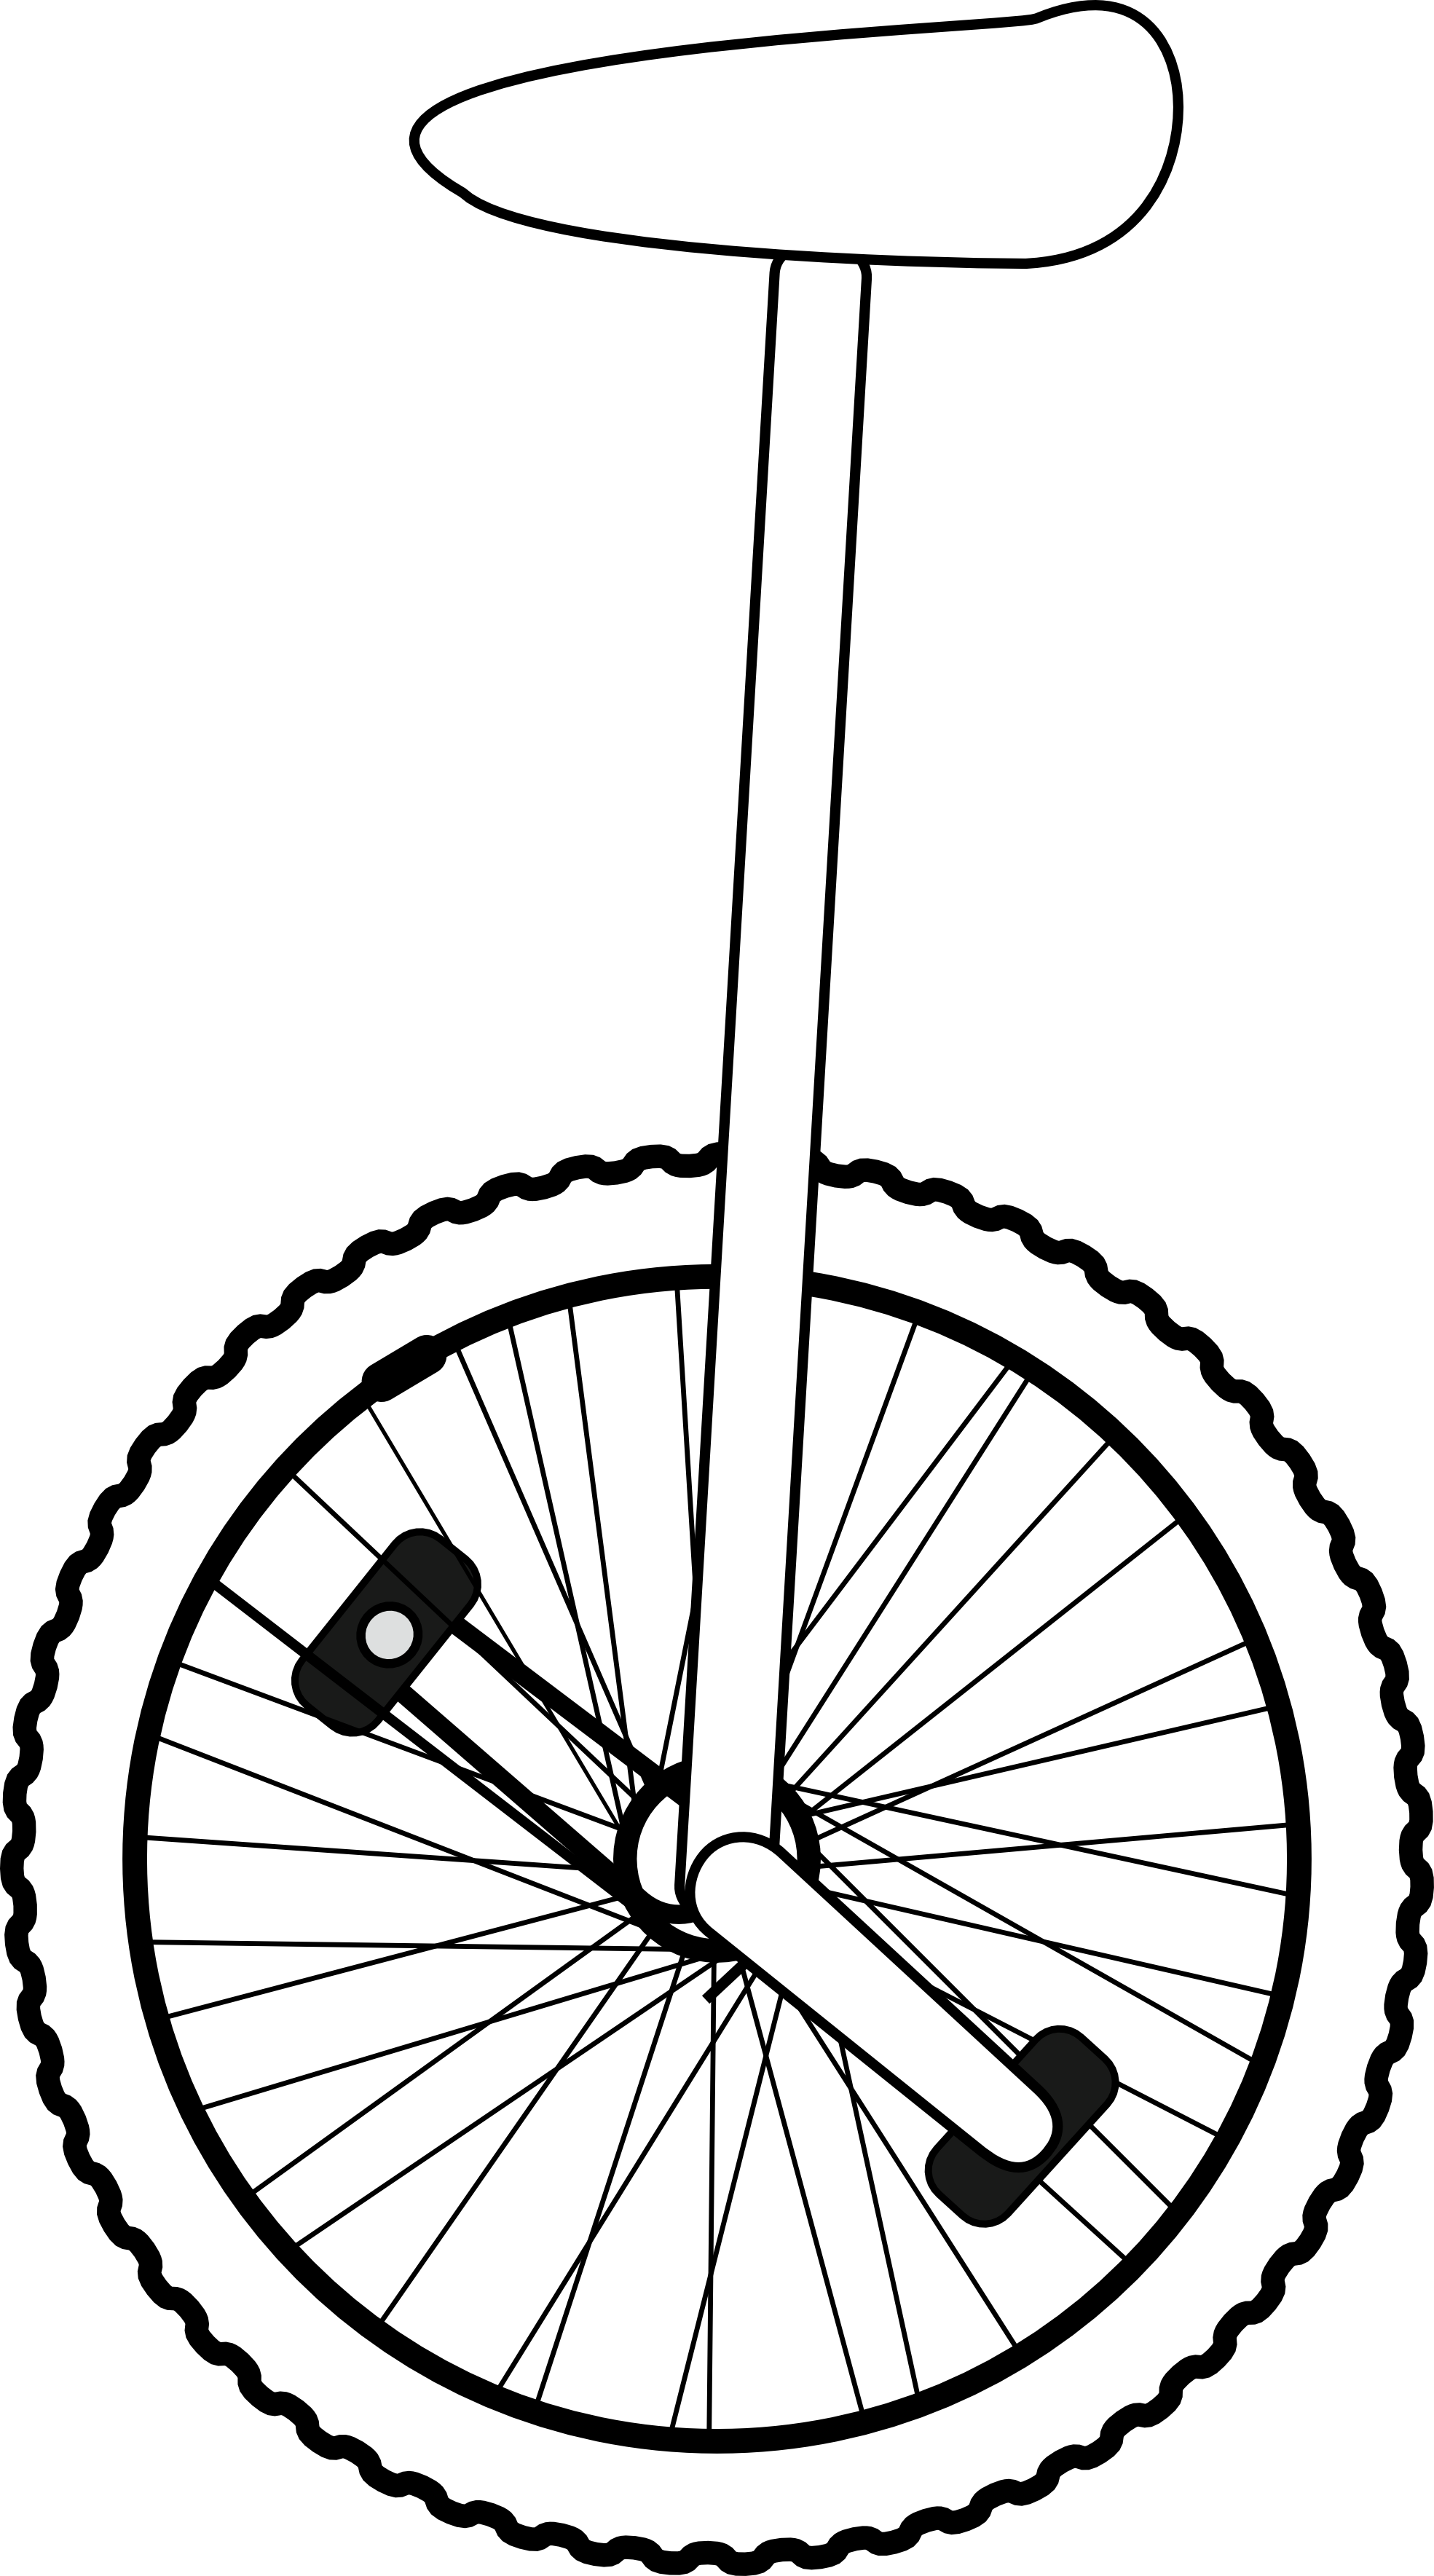 graphic black and white download Clipart black and white. Unicycle drawing simple